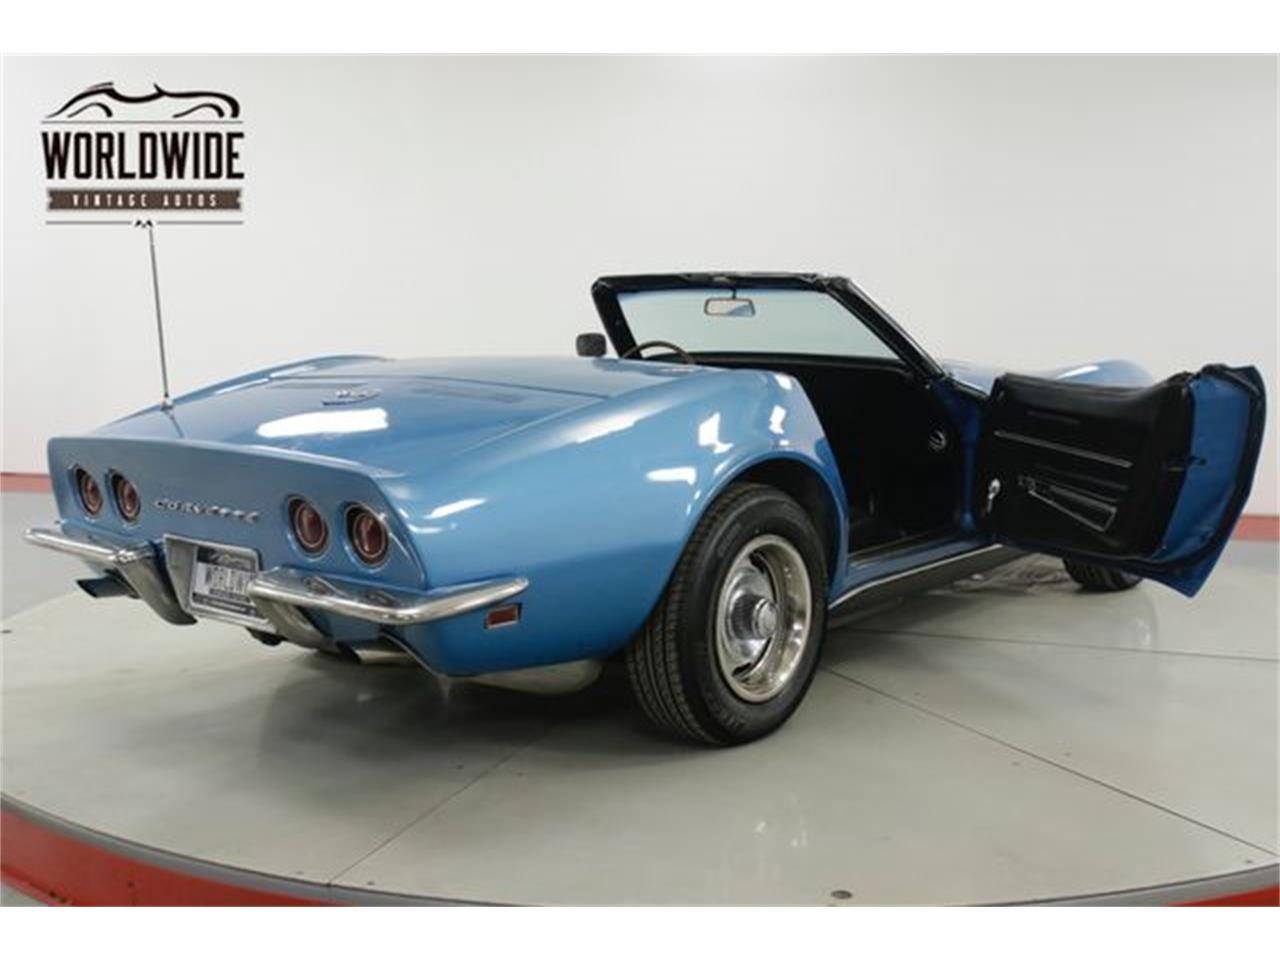 Large Picture of 1968 Chevrolet Corvette located in Colorado - $24,900.00 Offered by Worldwide Vintage Autos - PLDH